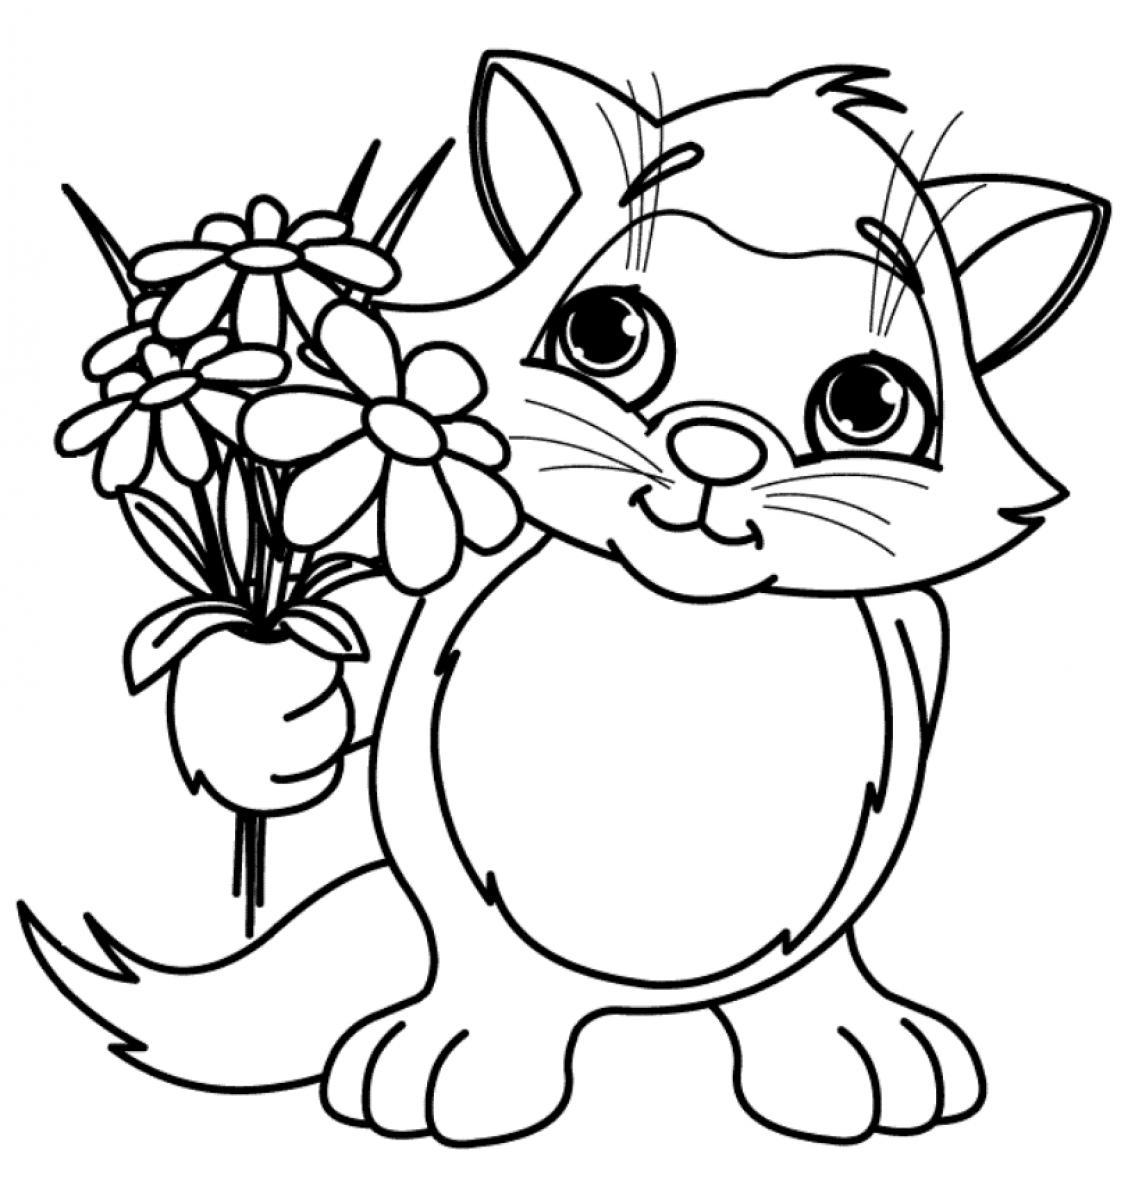 1135x1200 Cute Kitten Coloring Pages